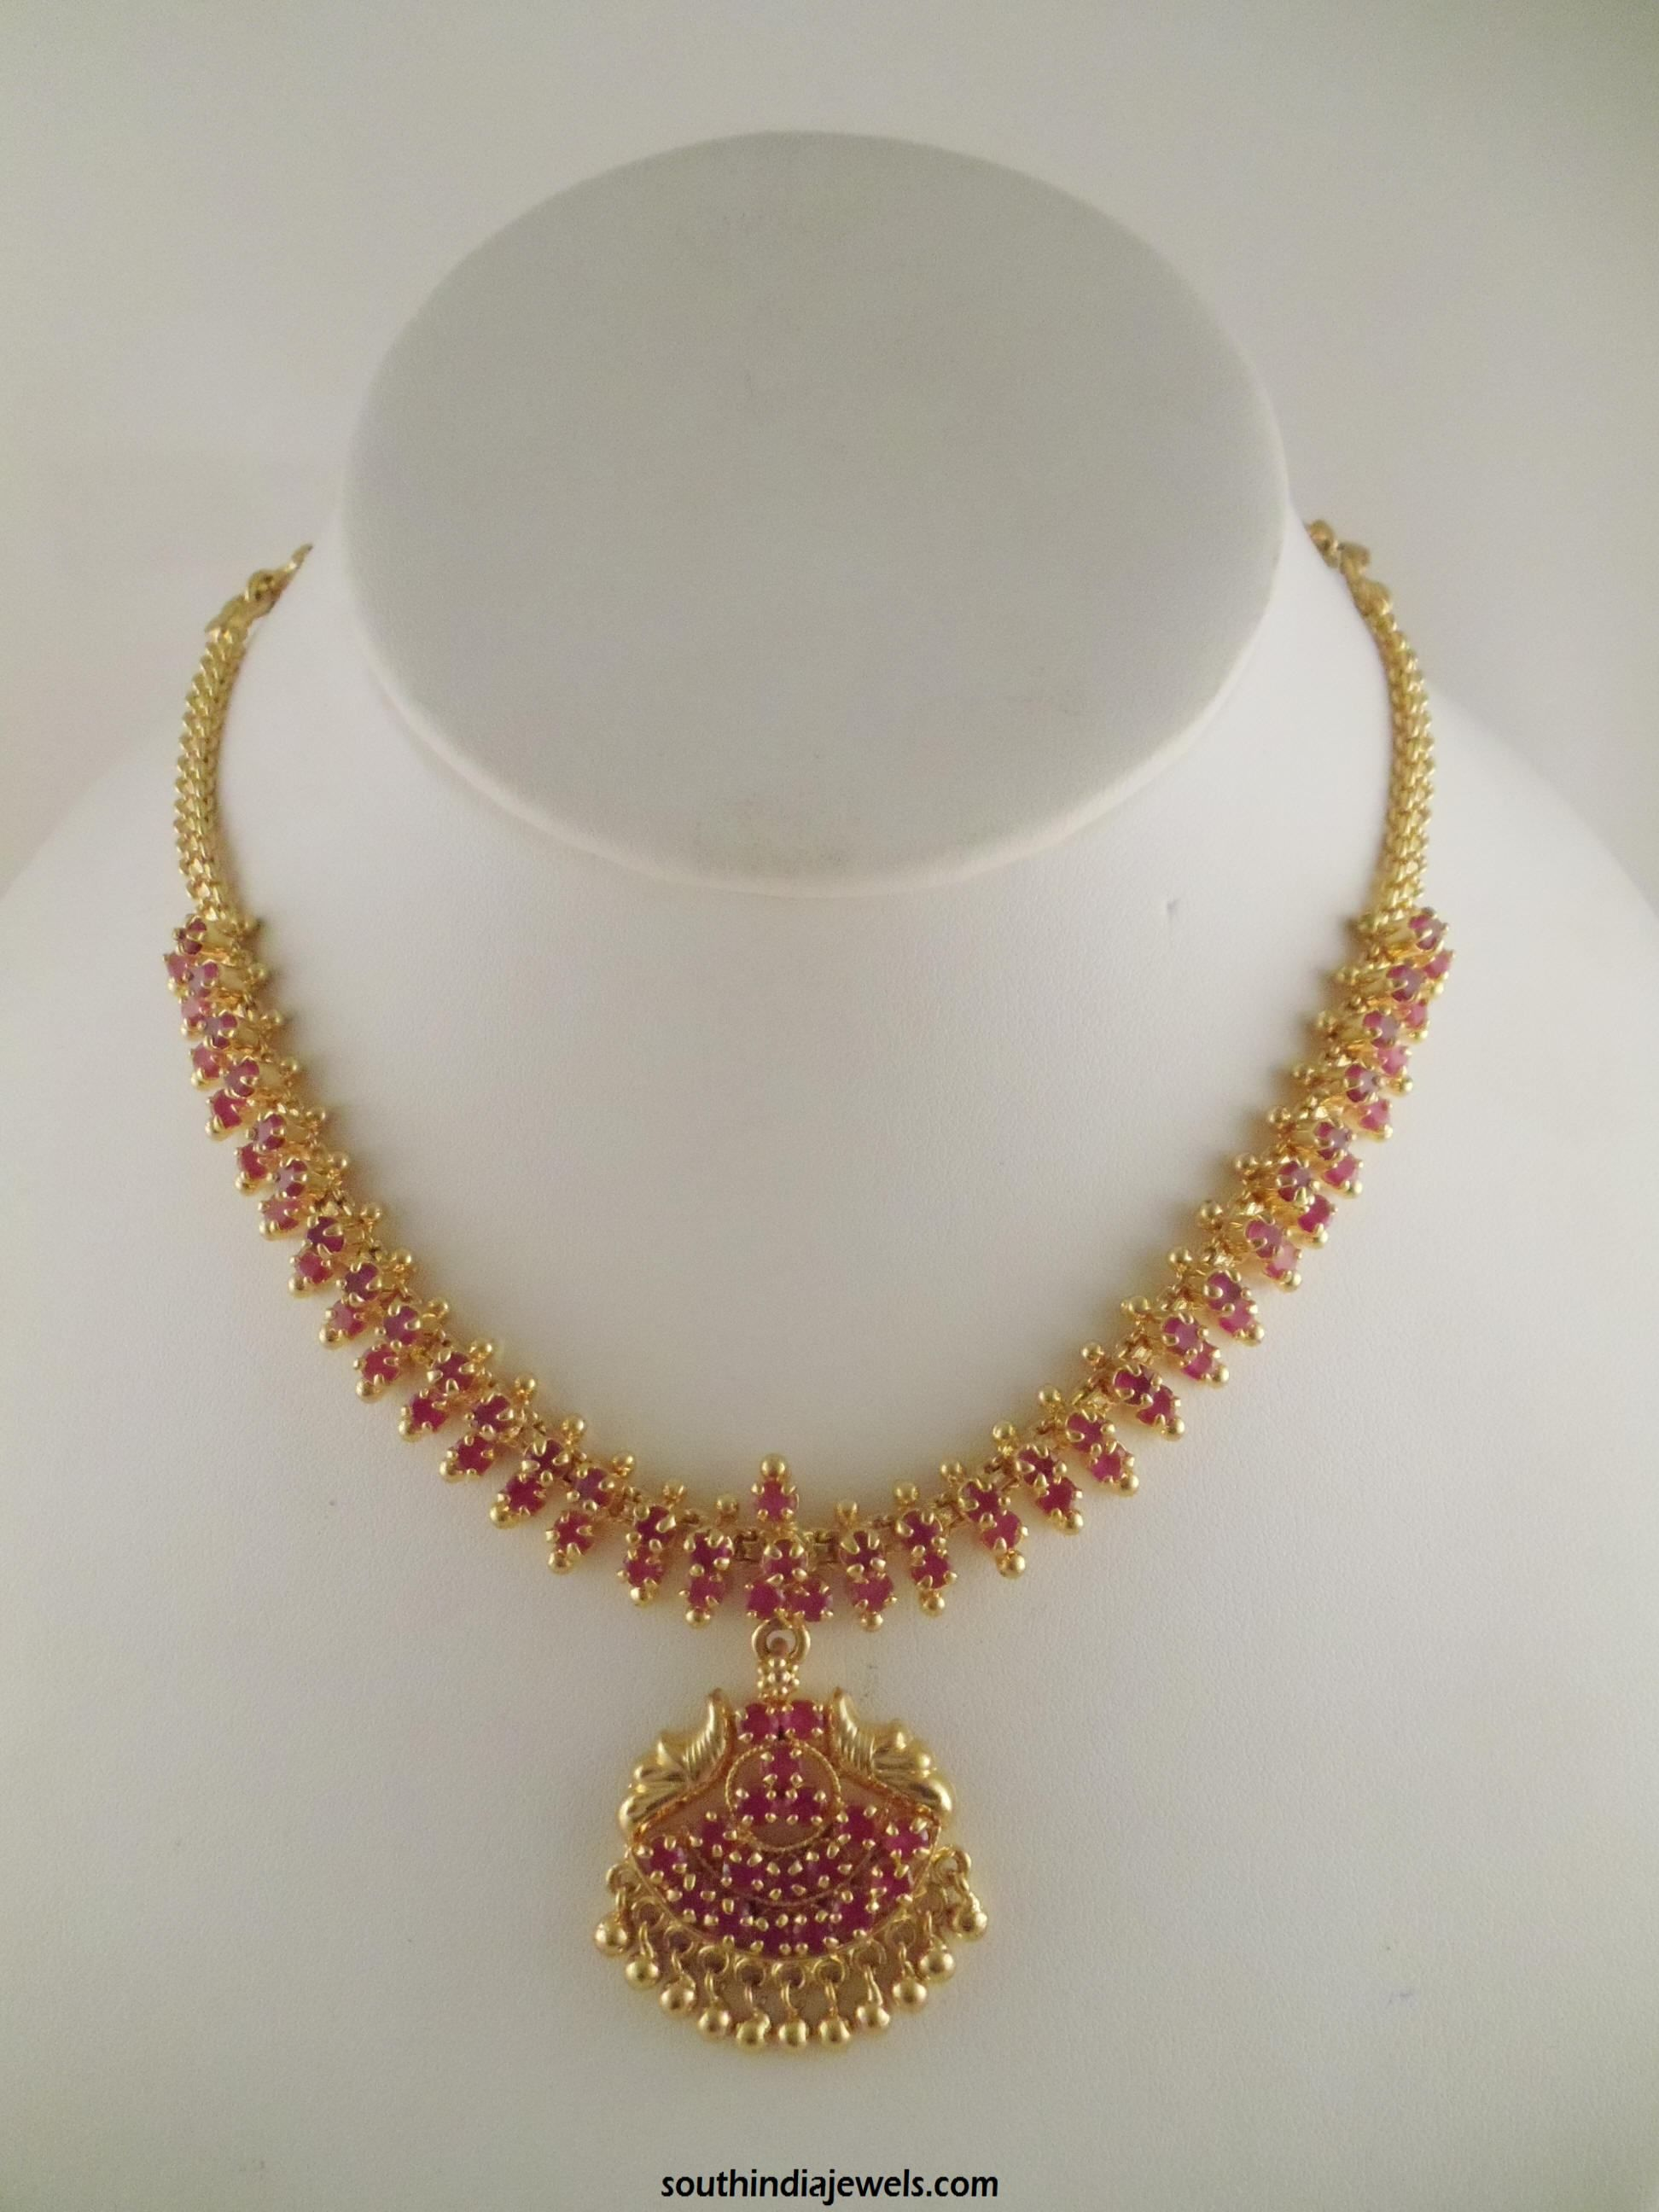 1 Gram Gold Ruby Necklace Design | Necklace designs, Indian jewelry ...